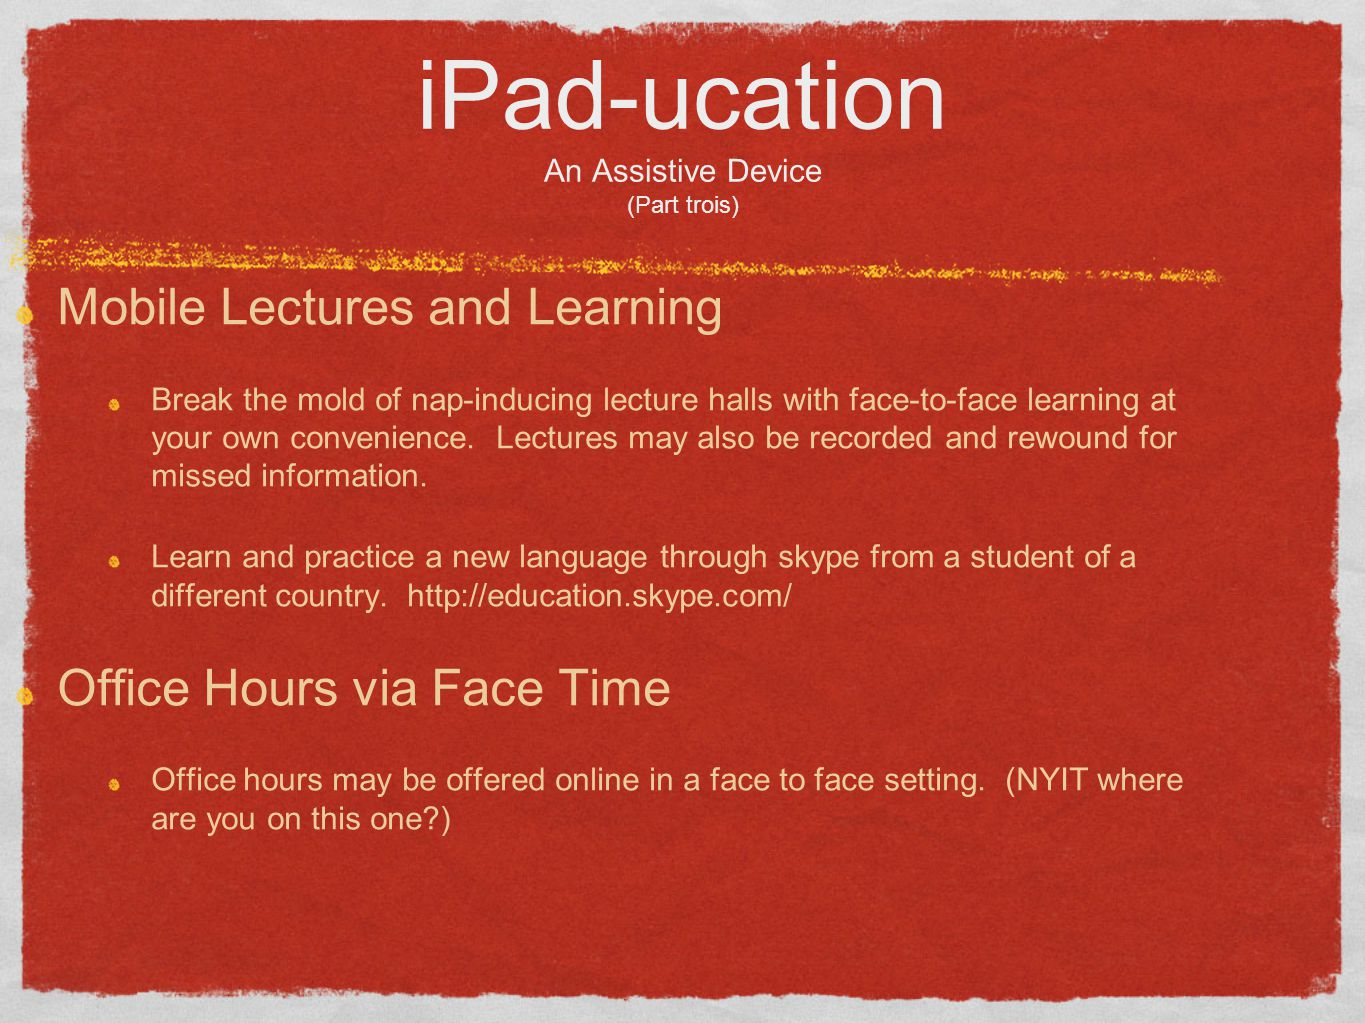 iPad-ucation An Assistive Device (Part trois) Mobile Lectures and Learning Break the mold of nap-inducing lecture halls with face-to-face learning at your own convenience.